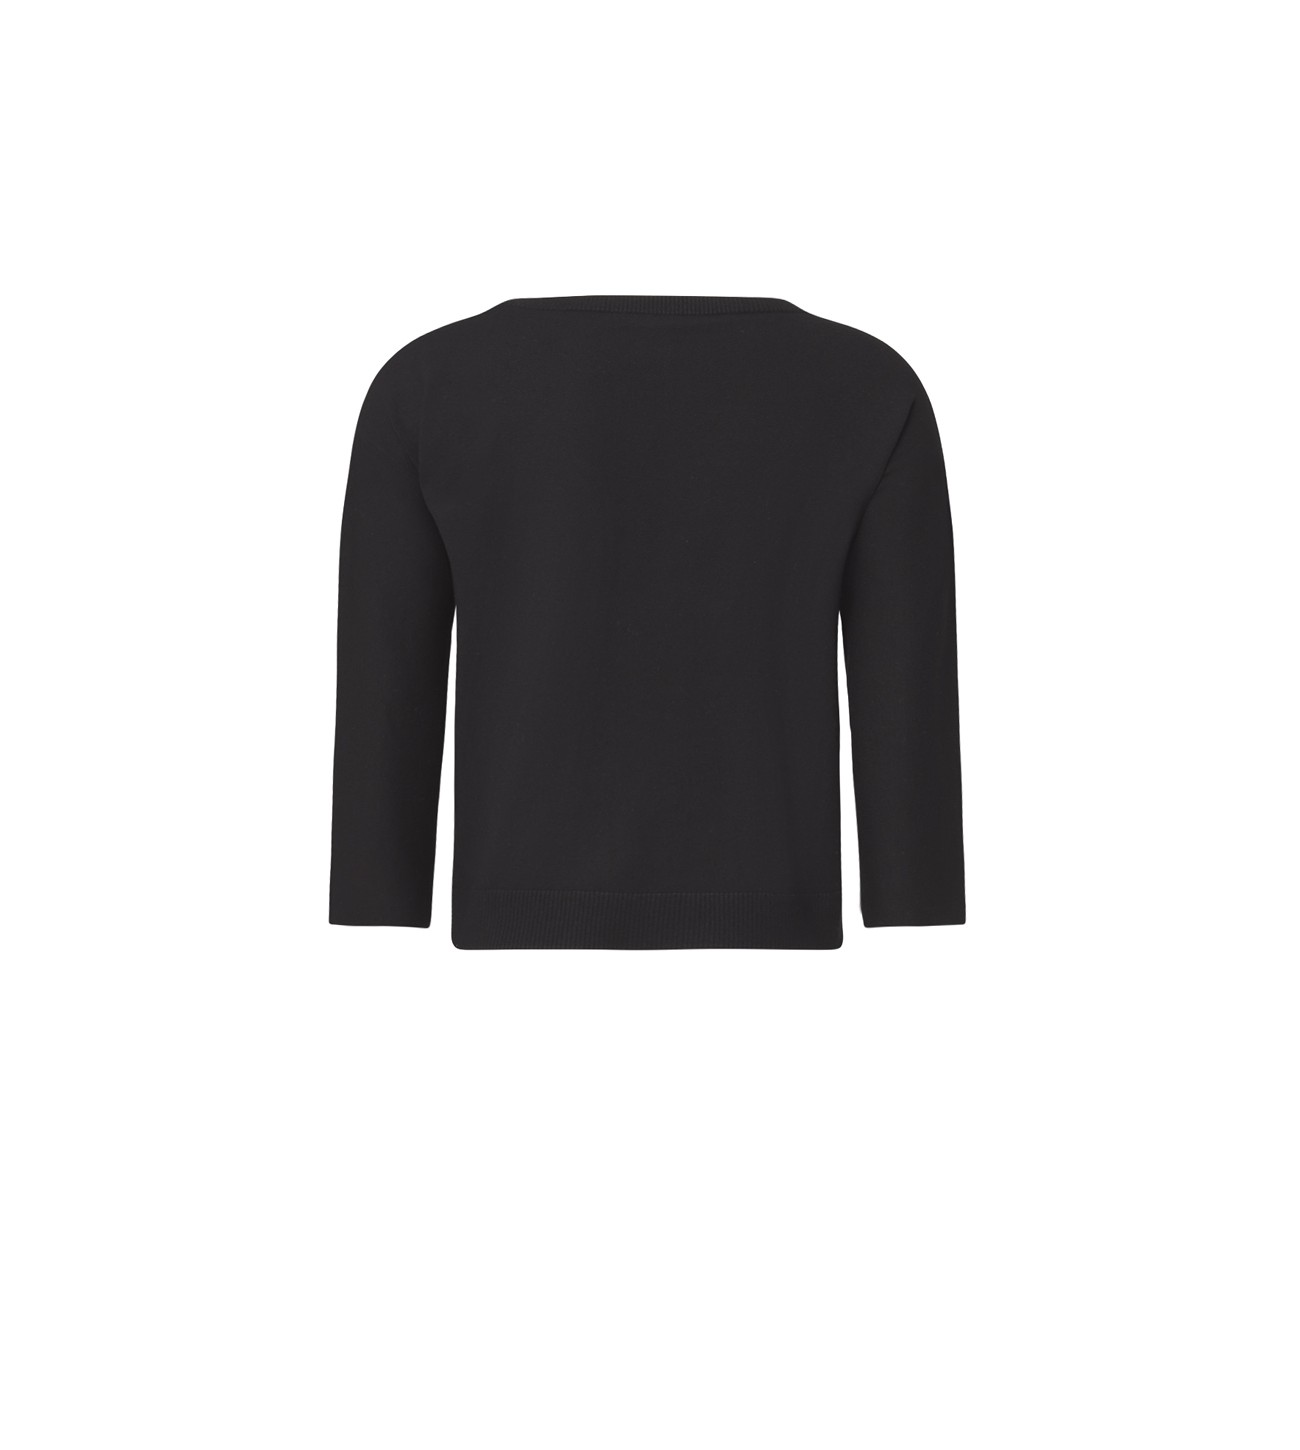 MARELLA_STRAIGHT_FIT_SWEATER_WITH_BATEAU_COLLAR_MARIONA_FASHION_CLOTHING_WOMAN_SHOP_ONLINE_33663007200